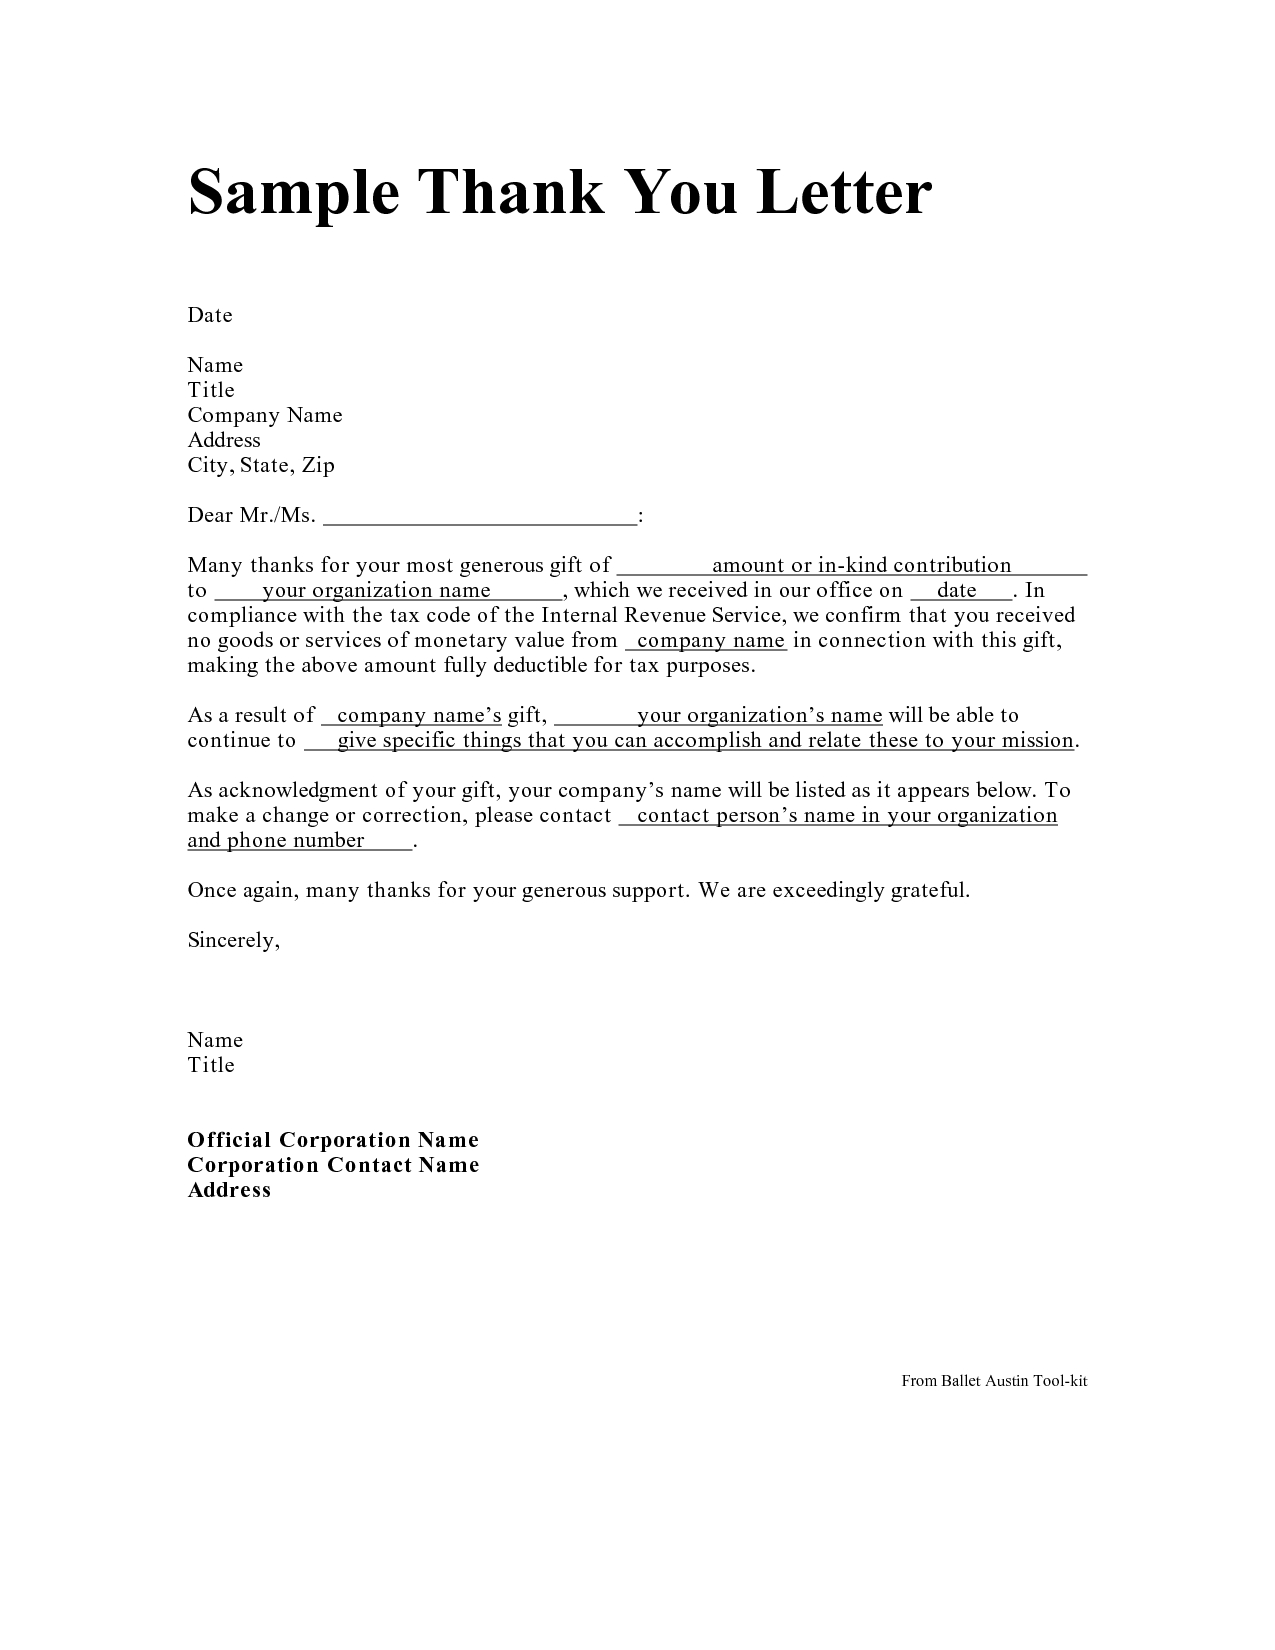 Interview Thank You Letter Template - Personal Thank You Letter Personal Thank You Letter Samples